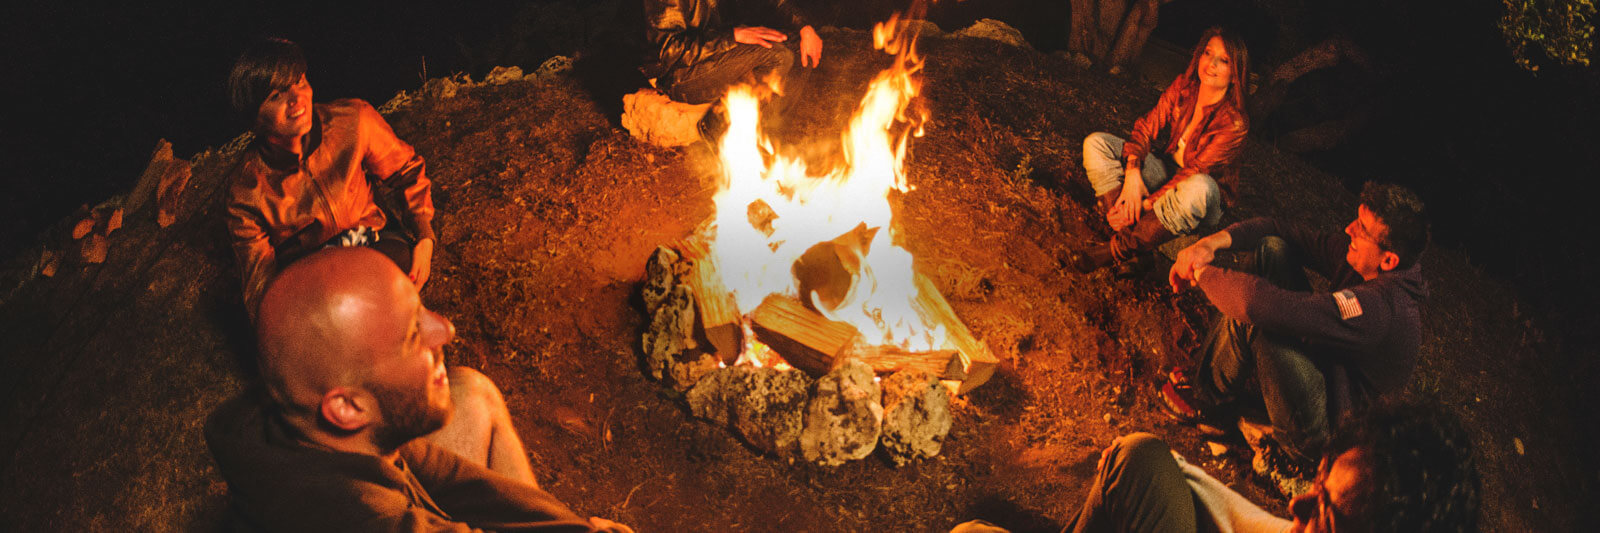 Amicalola Falls Adventure Lodge Adventures Fire Pit Stories 1